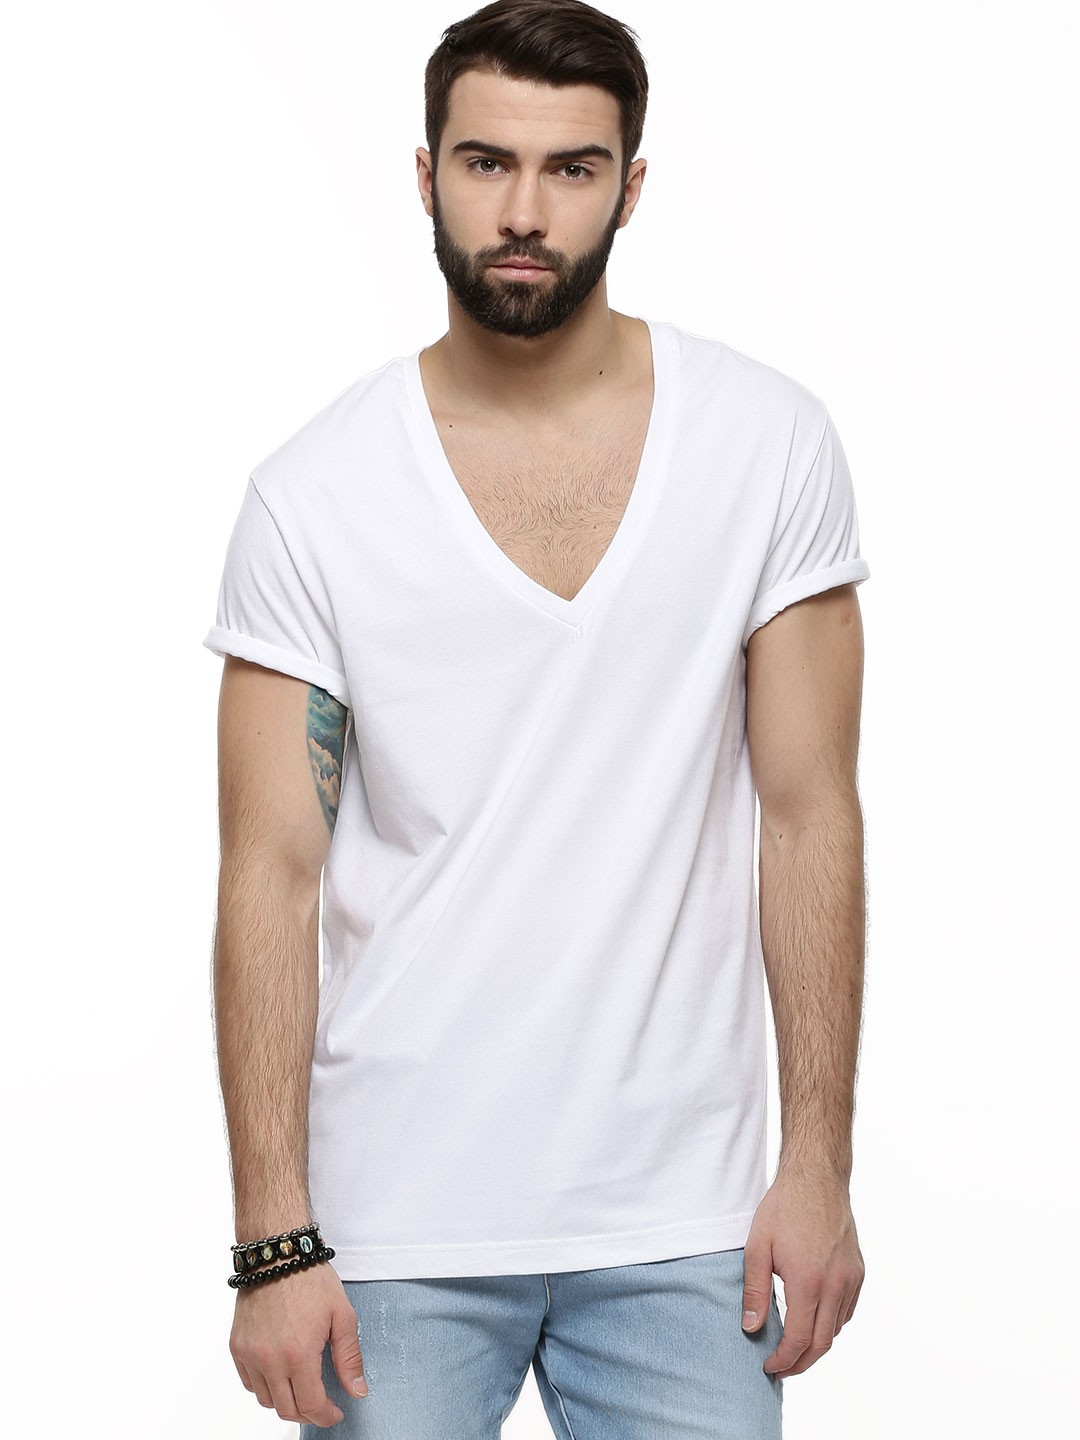 V Neck T Shirt Buy Koovs White Deep V-neck T-shirt For Men Online In India